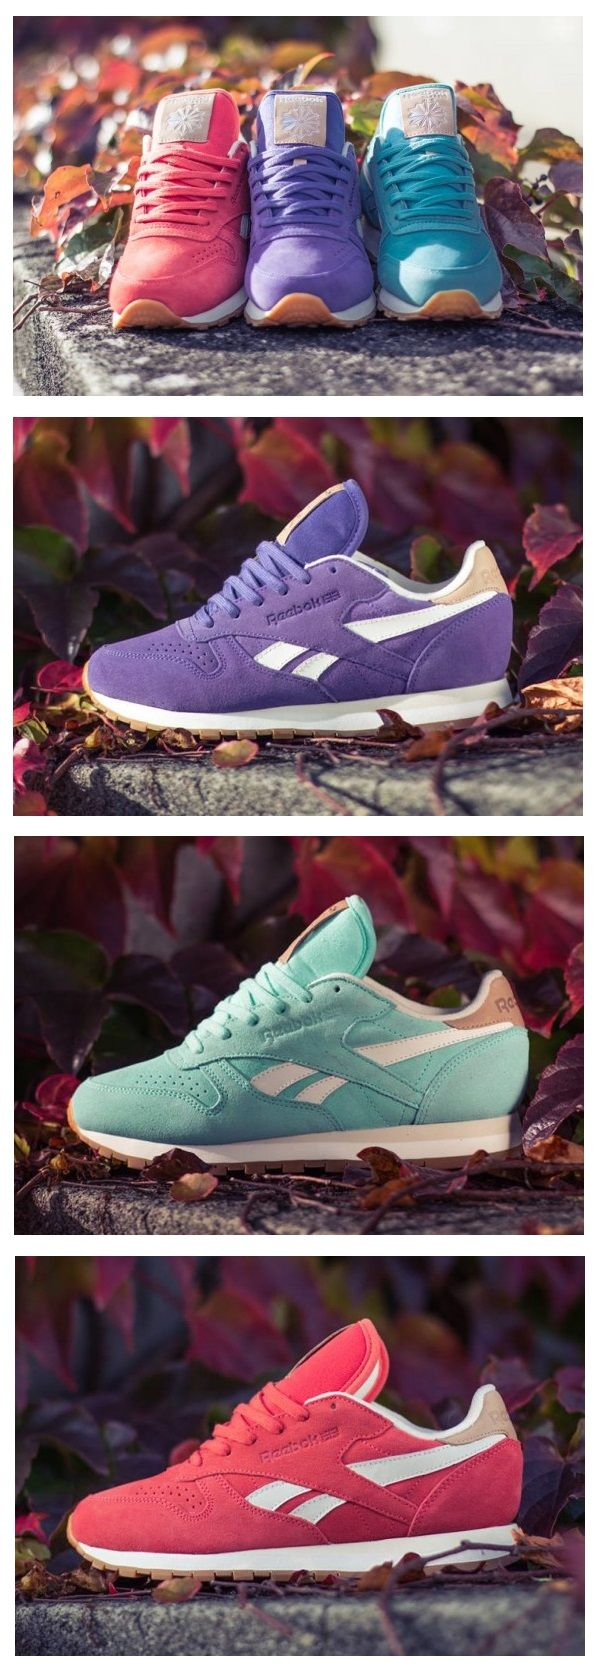 Reebok Classic Leather Suede | Slippers | Pinterest